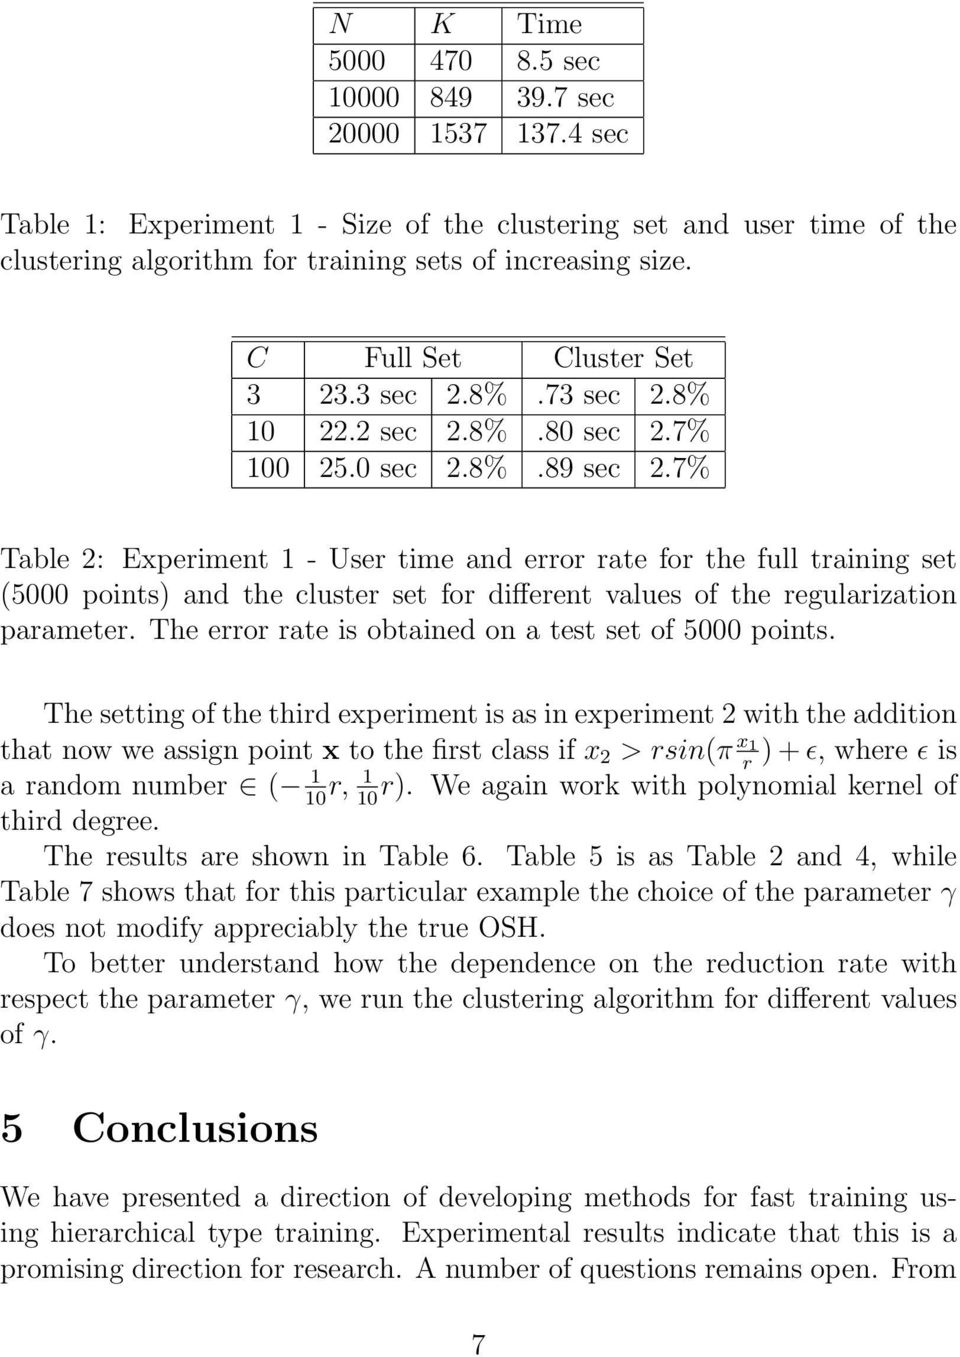 7% Table 2: Experiment 1 - User time and error rate for the full training set (5000 points) and the cluster set for different values of the regularization parameter.